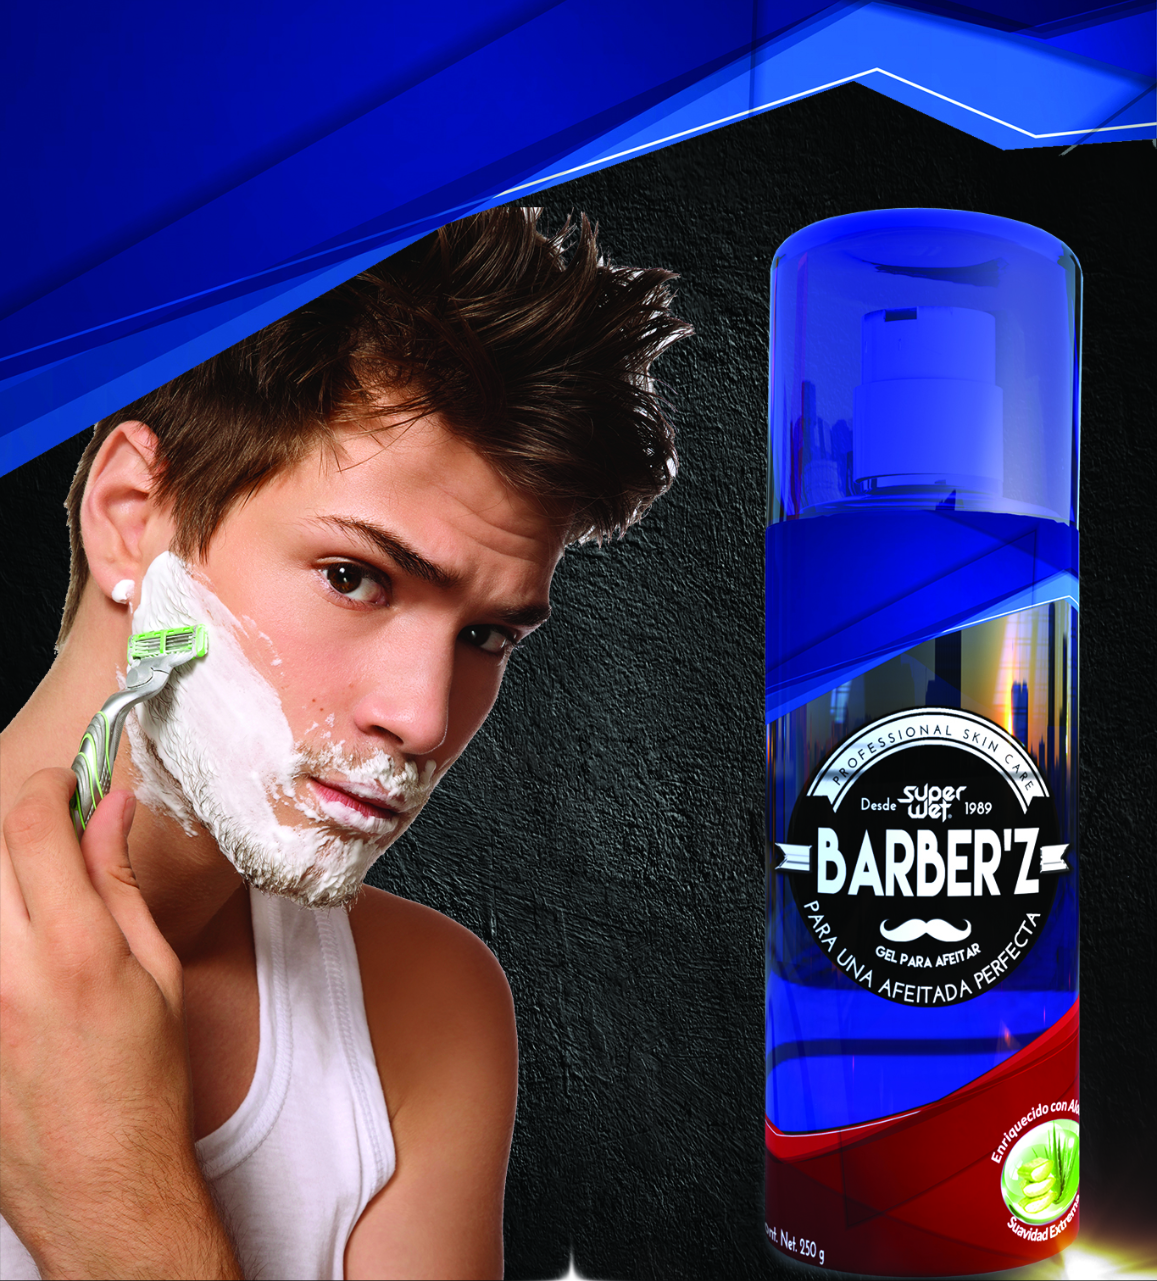 Barber'z Shaving Gel